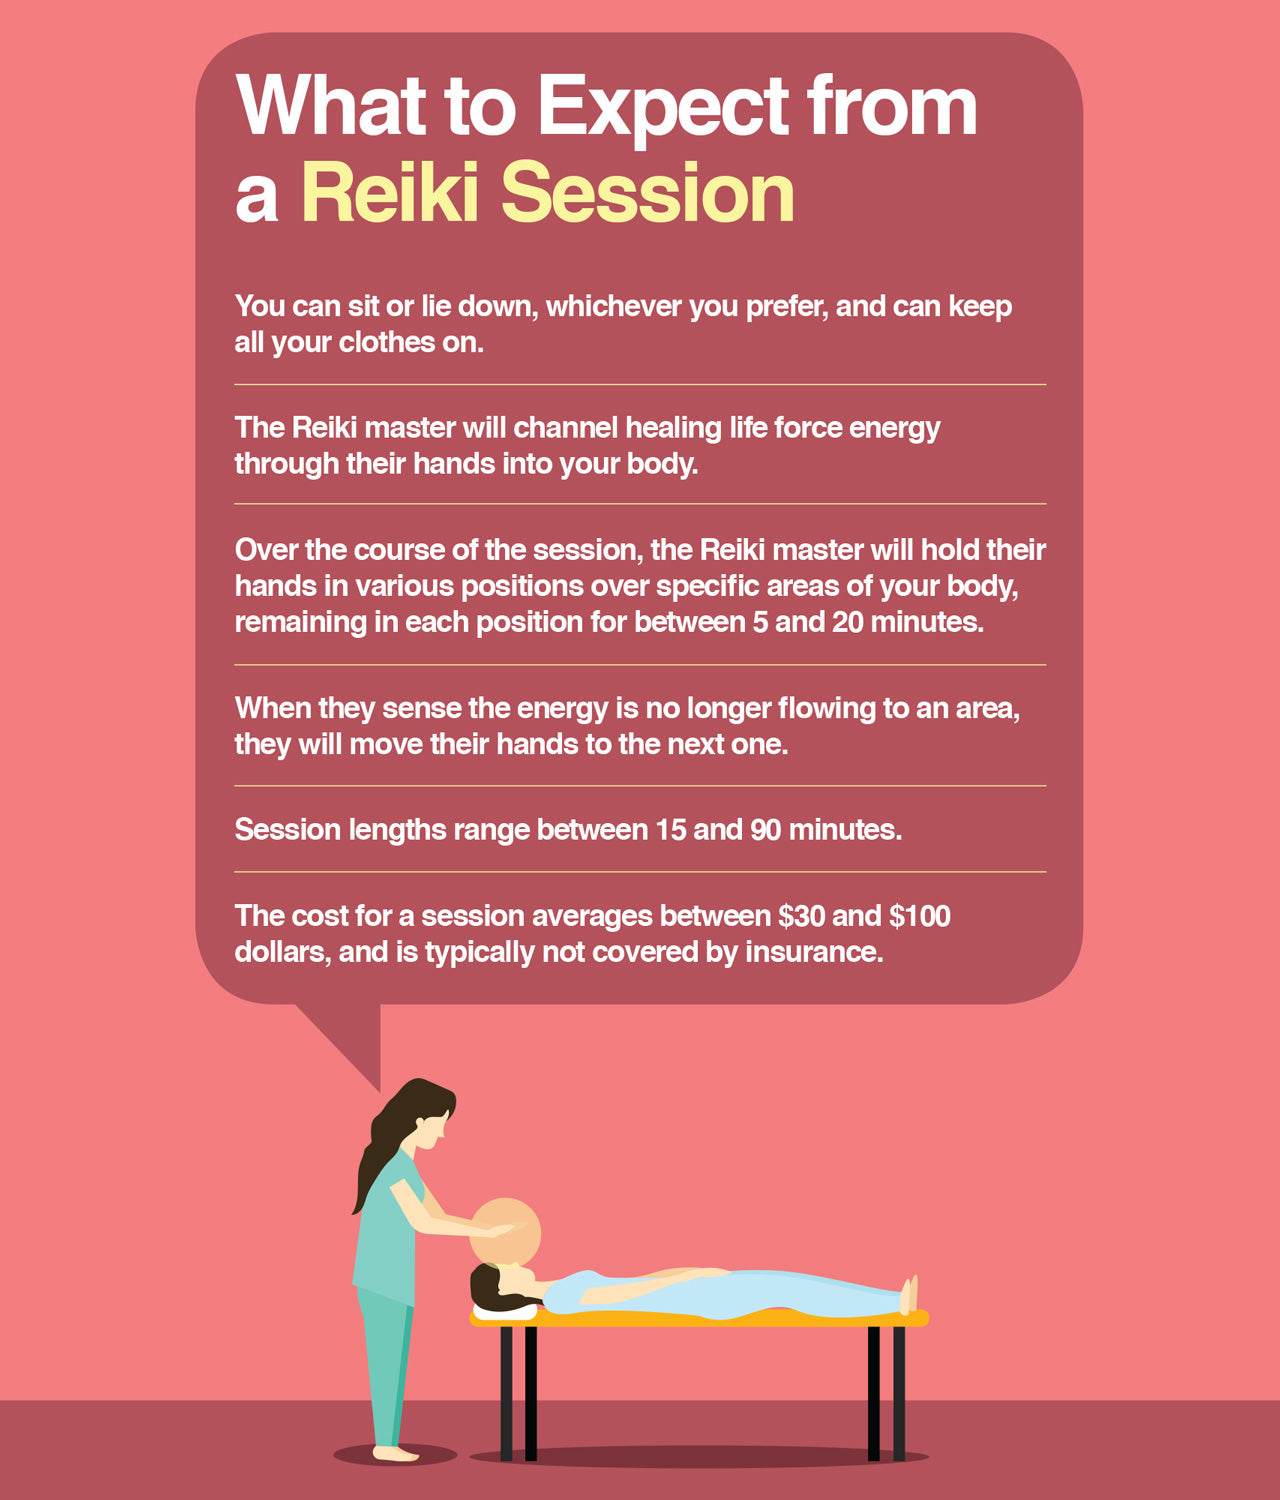 Here is what to expect from a Reiki session.